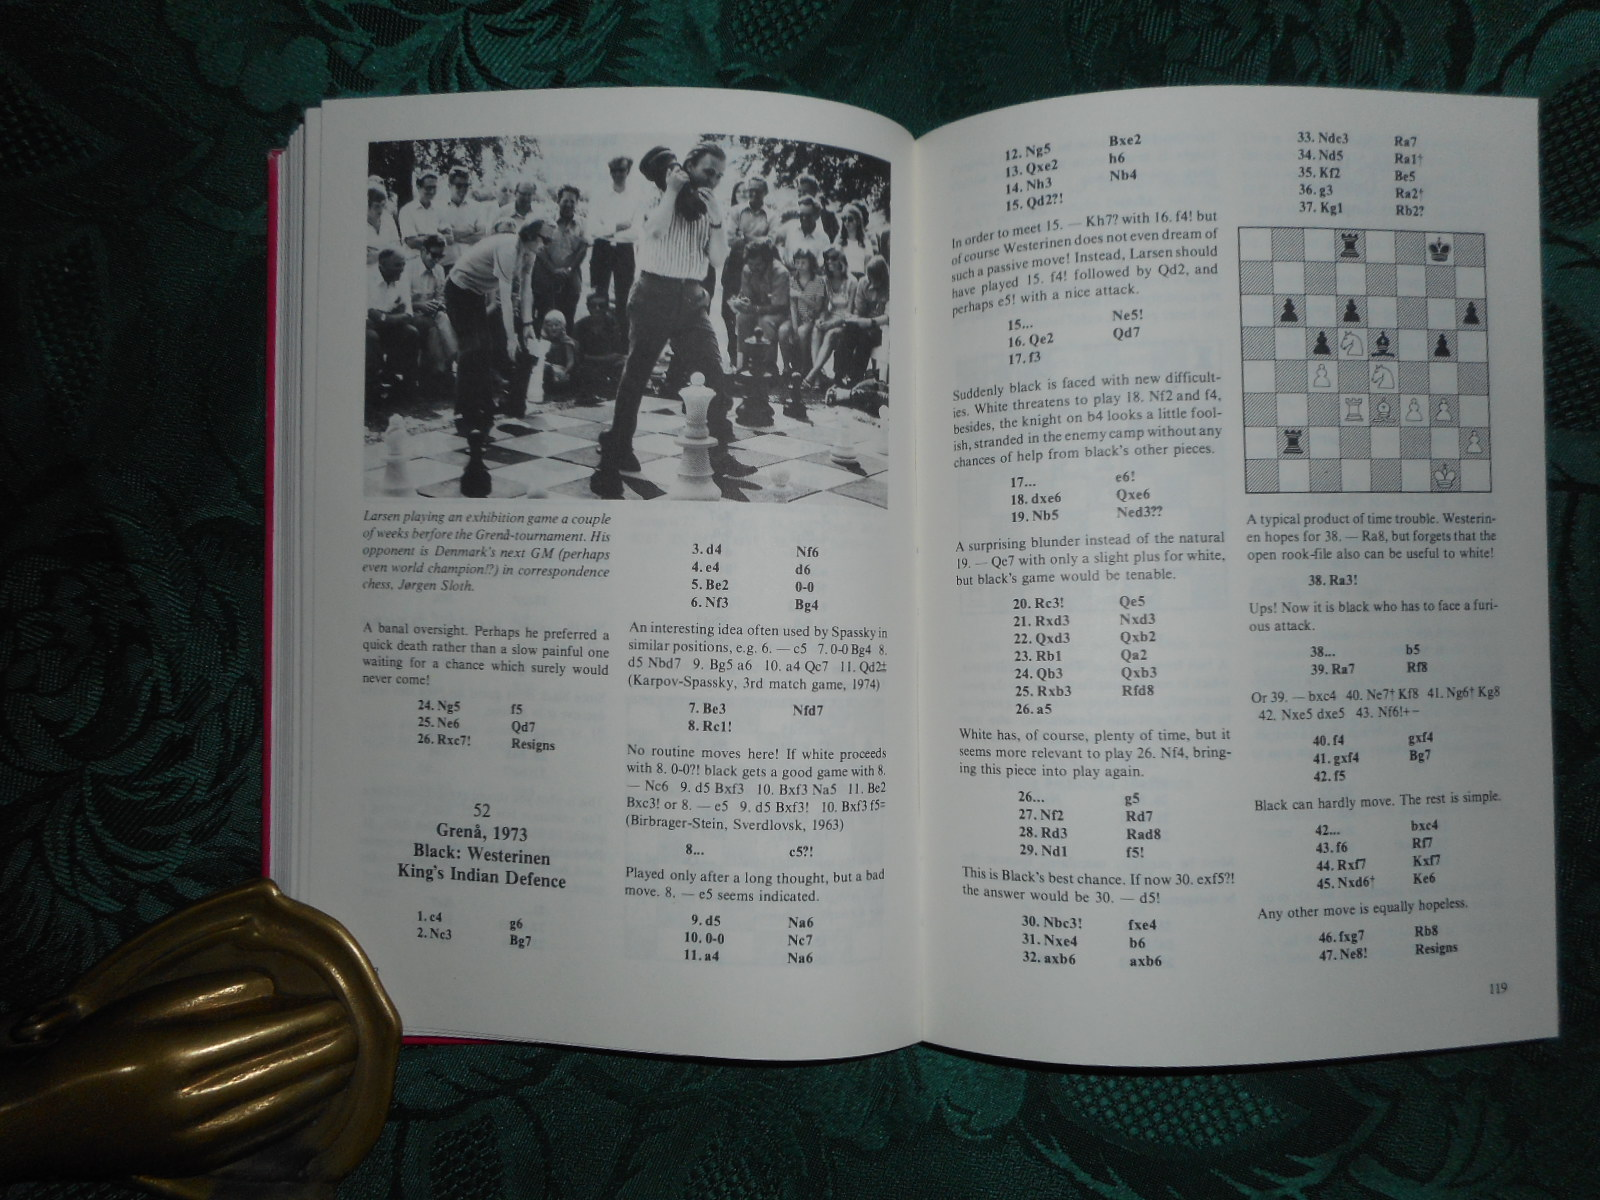 Image for Bent Larsen - The Fighter. (Together with an Official Score Sheet of a Match - US Chess Fed. - between Bent Larsen and A. J. Miles. SIGNED by Both Players)